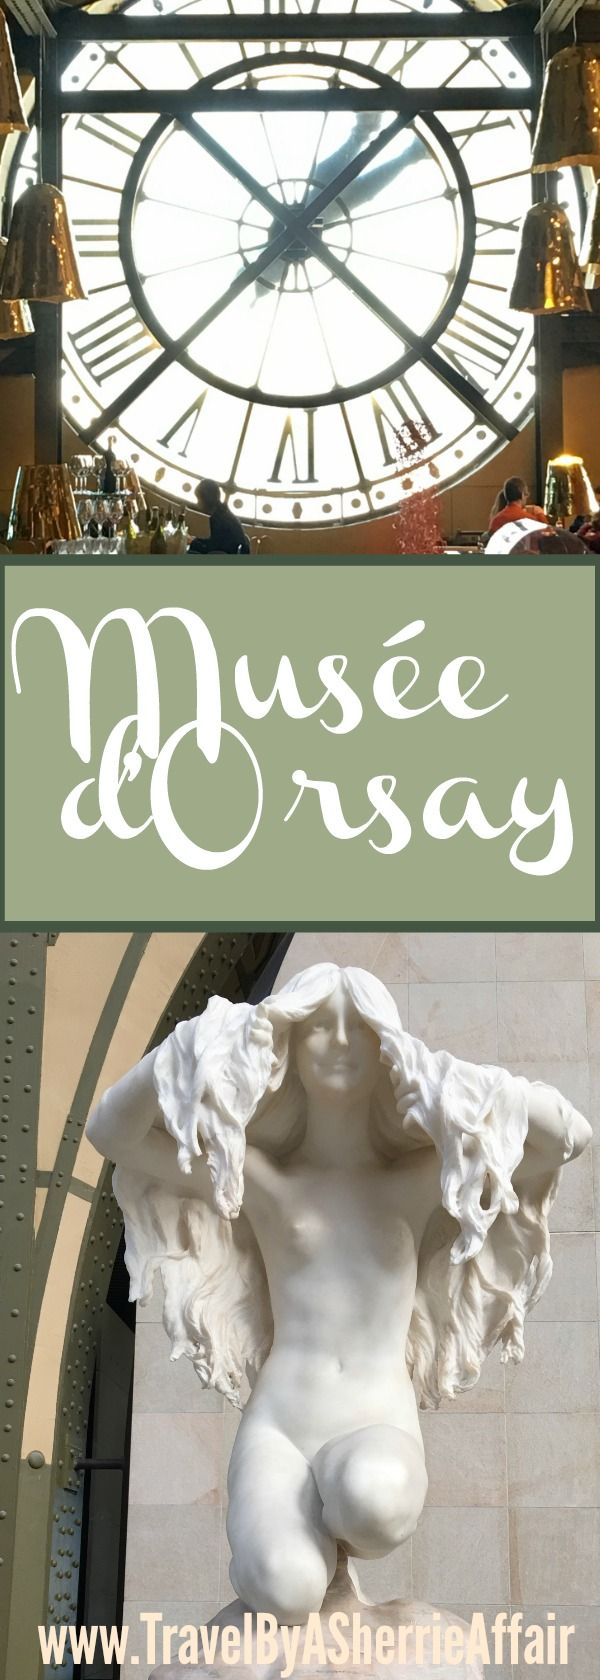 Musée d'Orsay in Paris, France is one of my favorite museums in the world.  Filled with Impressionism artwork an entire day can be spent there just marveling at all the talent.